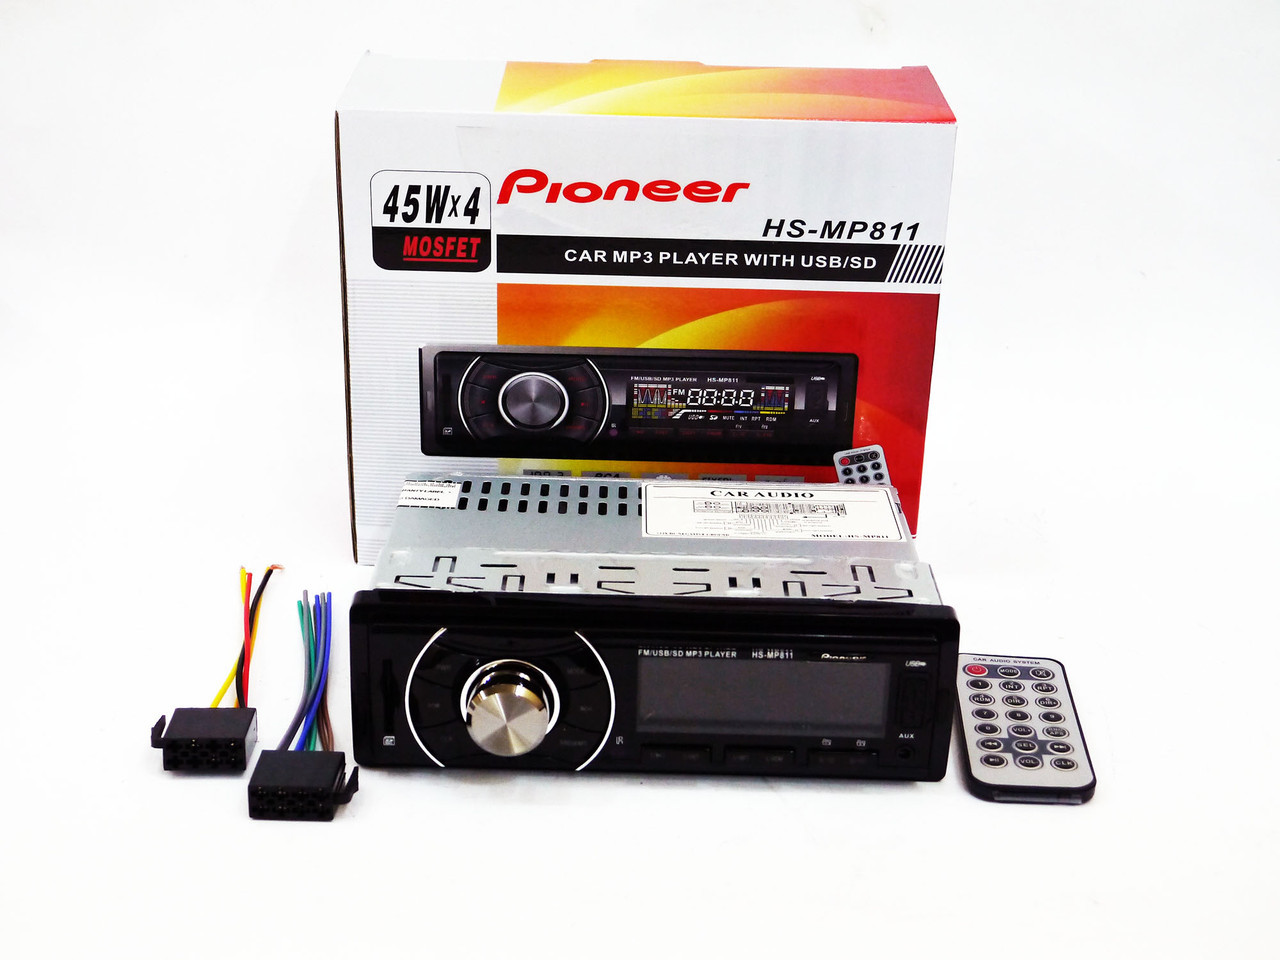 Автомагнитола Pioneer HS-MP811 - MP3 Player, FM, USB, SD, AUX